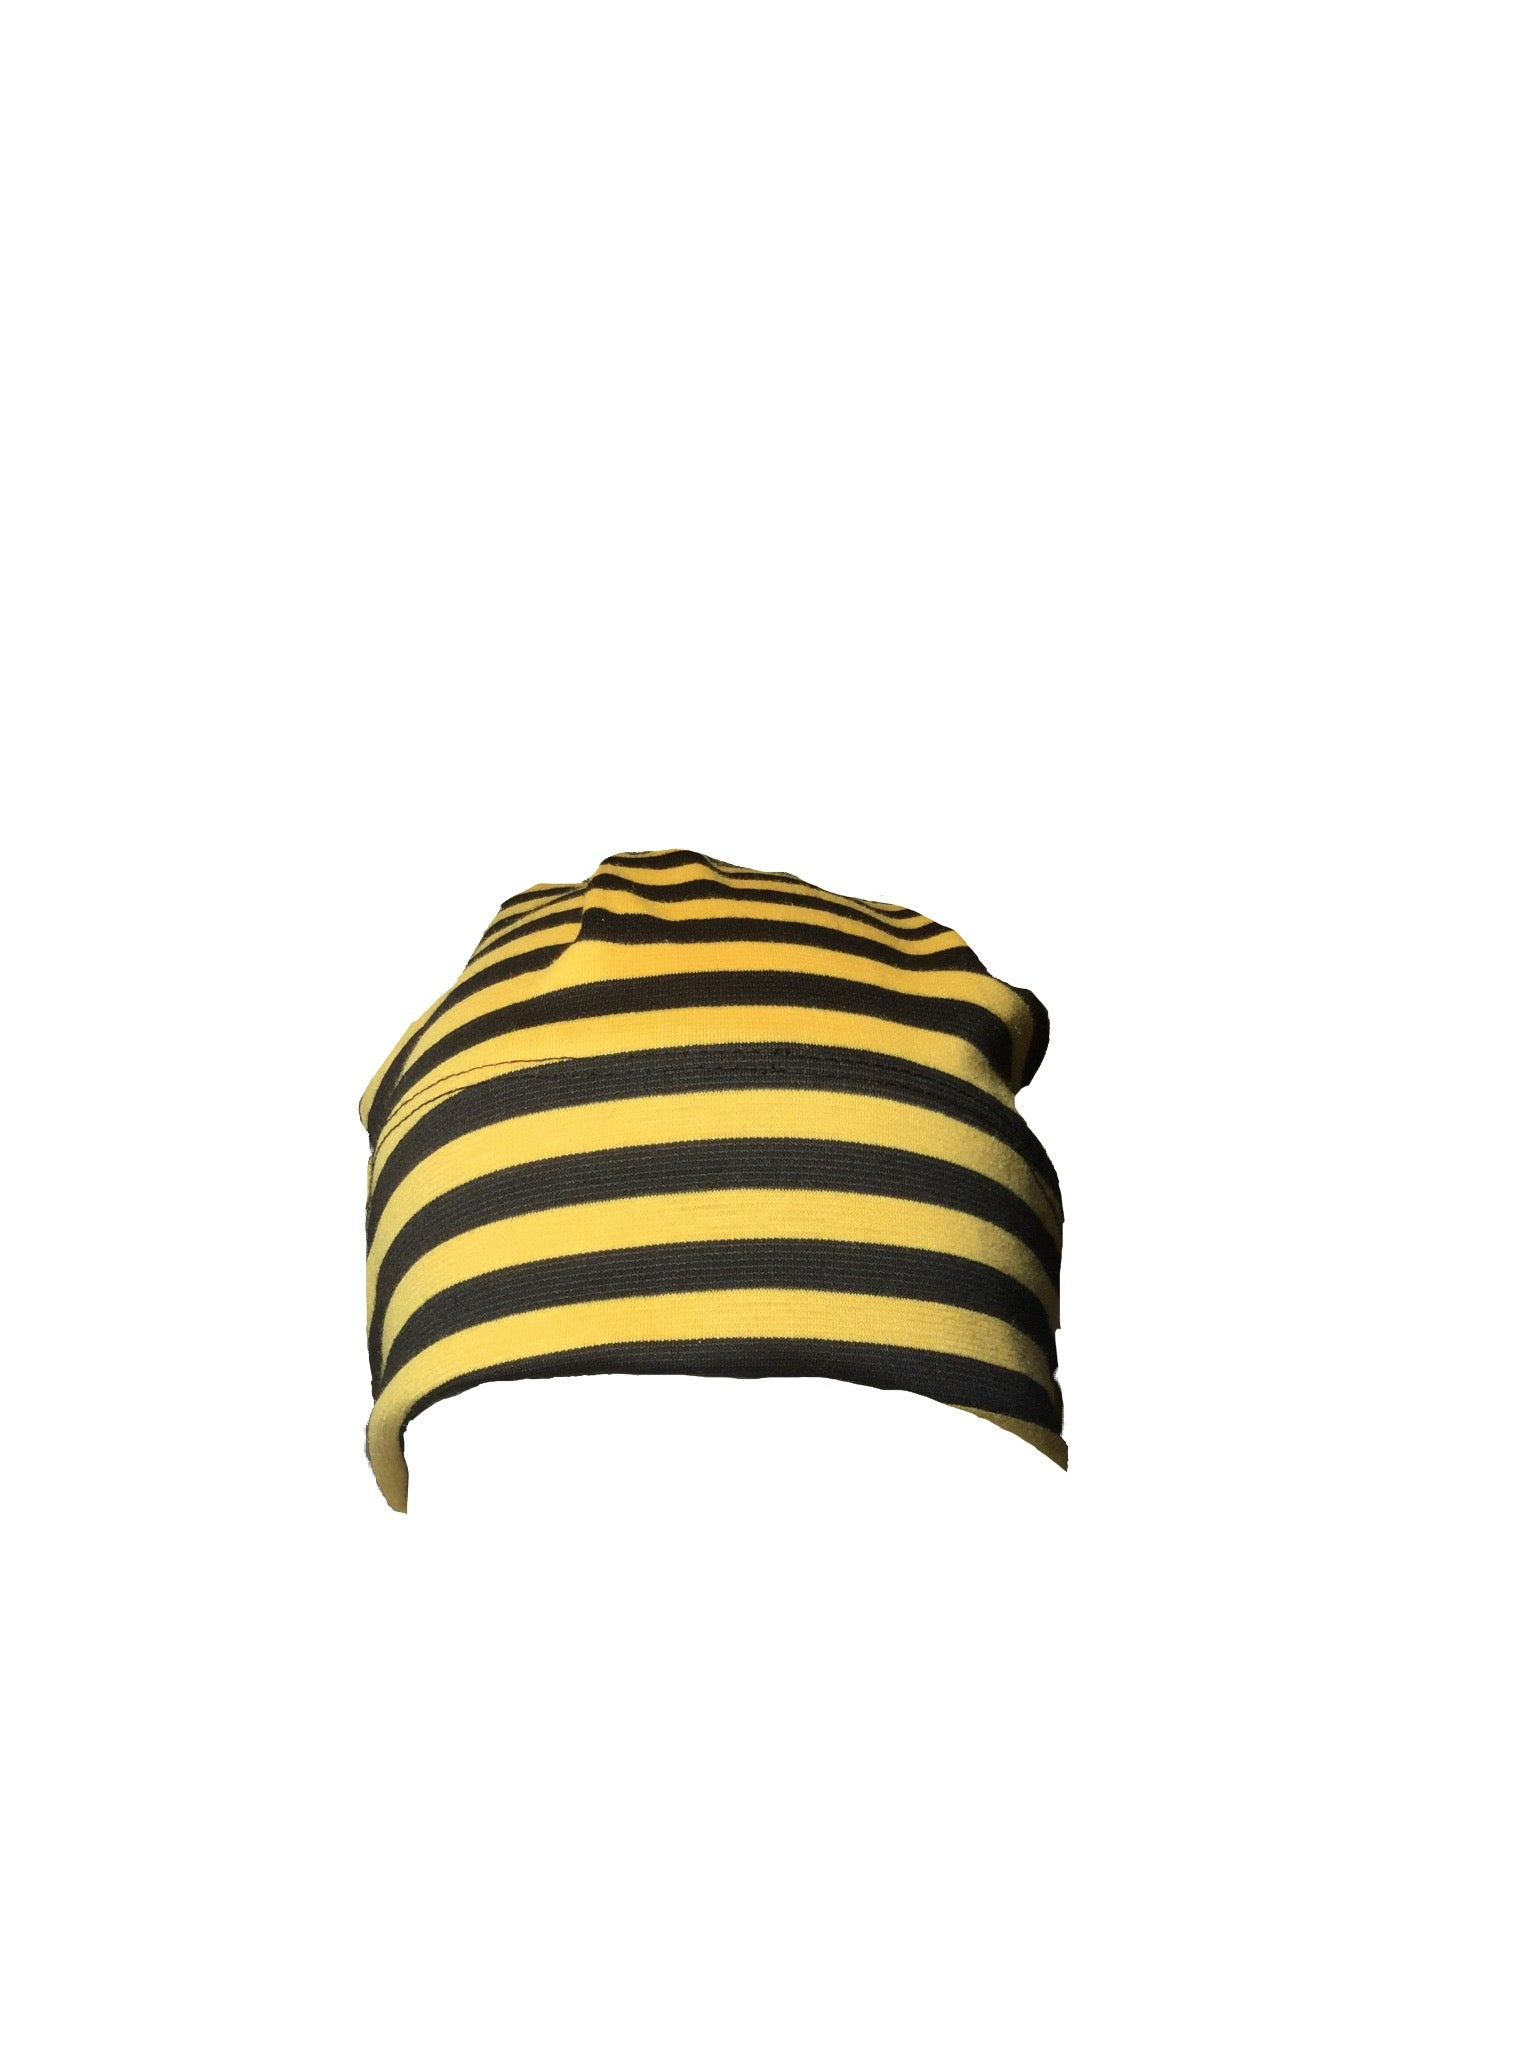 Davinaire Black Yellow Striped Beanie 94ae967caa8